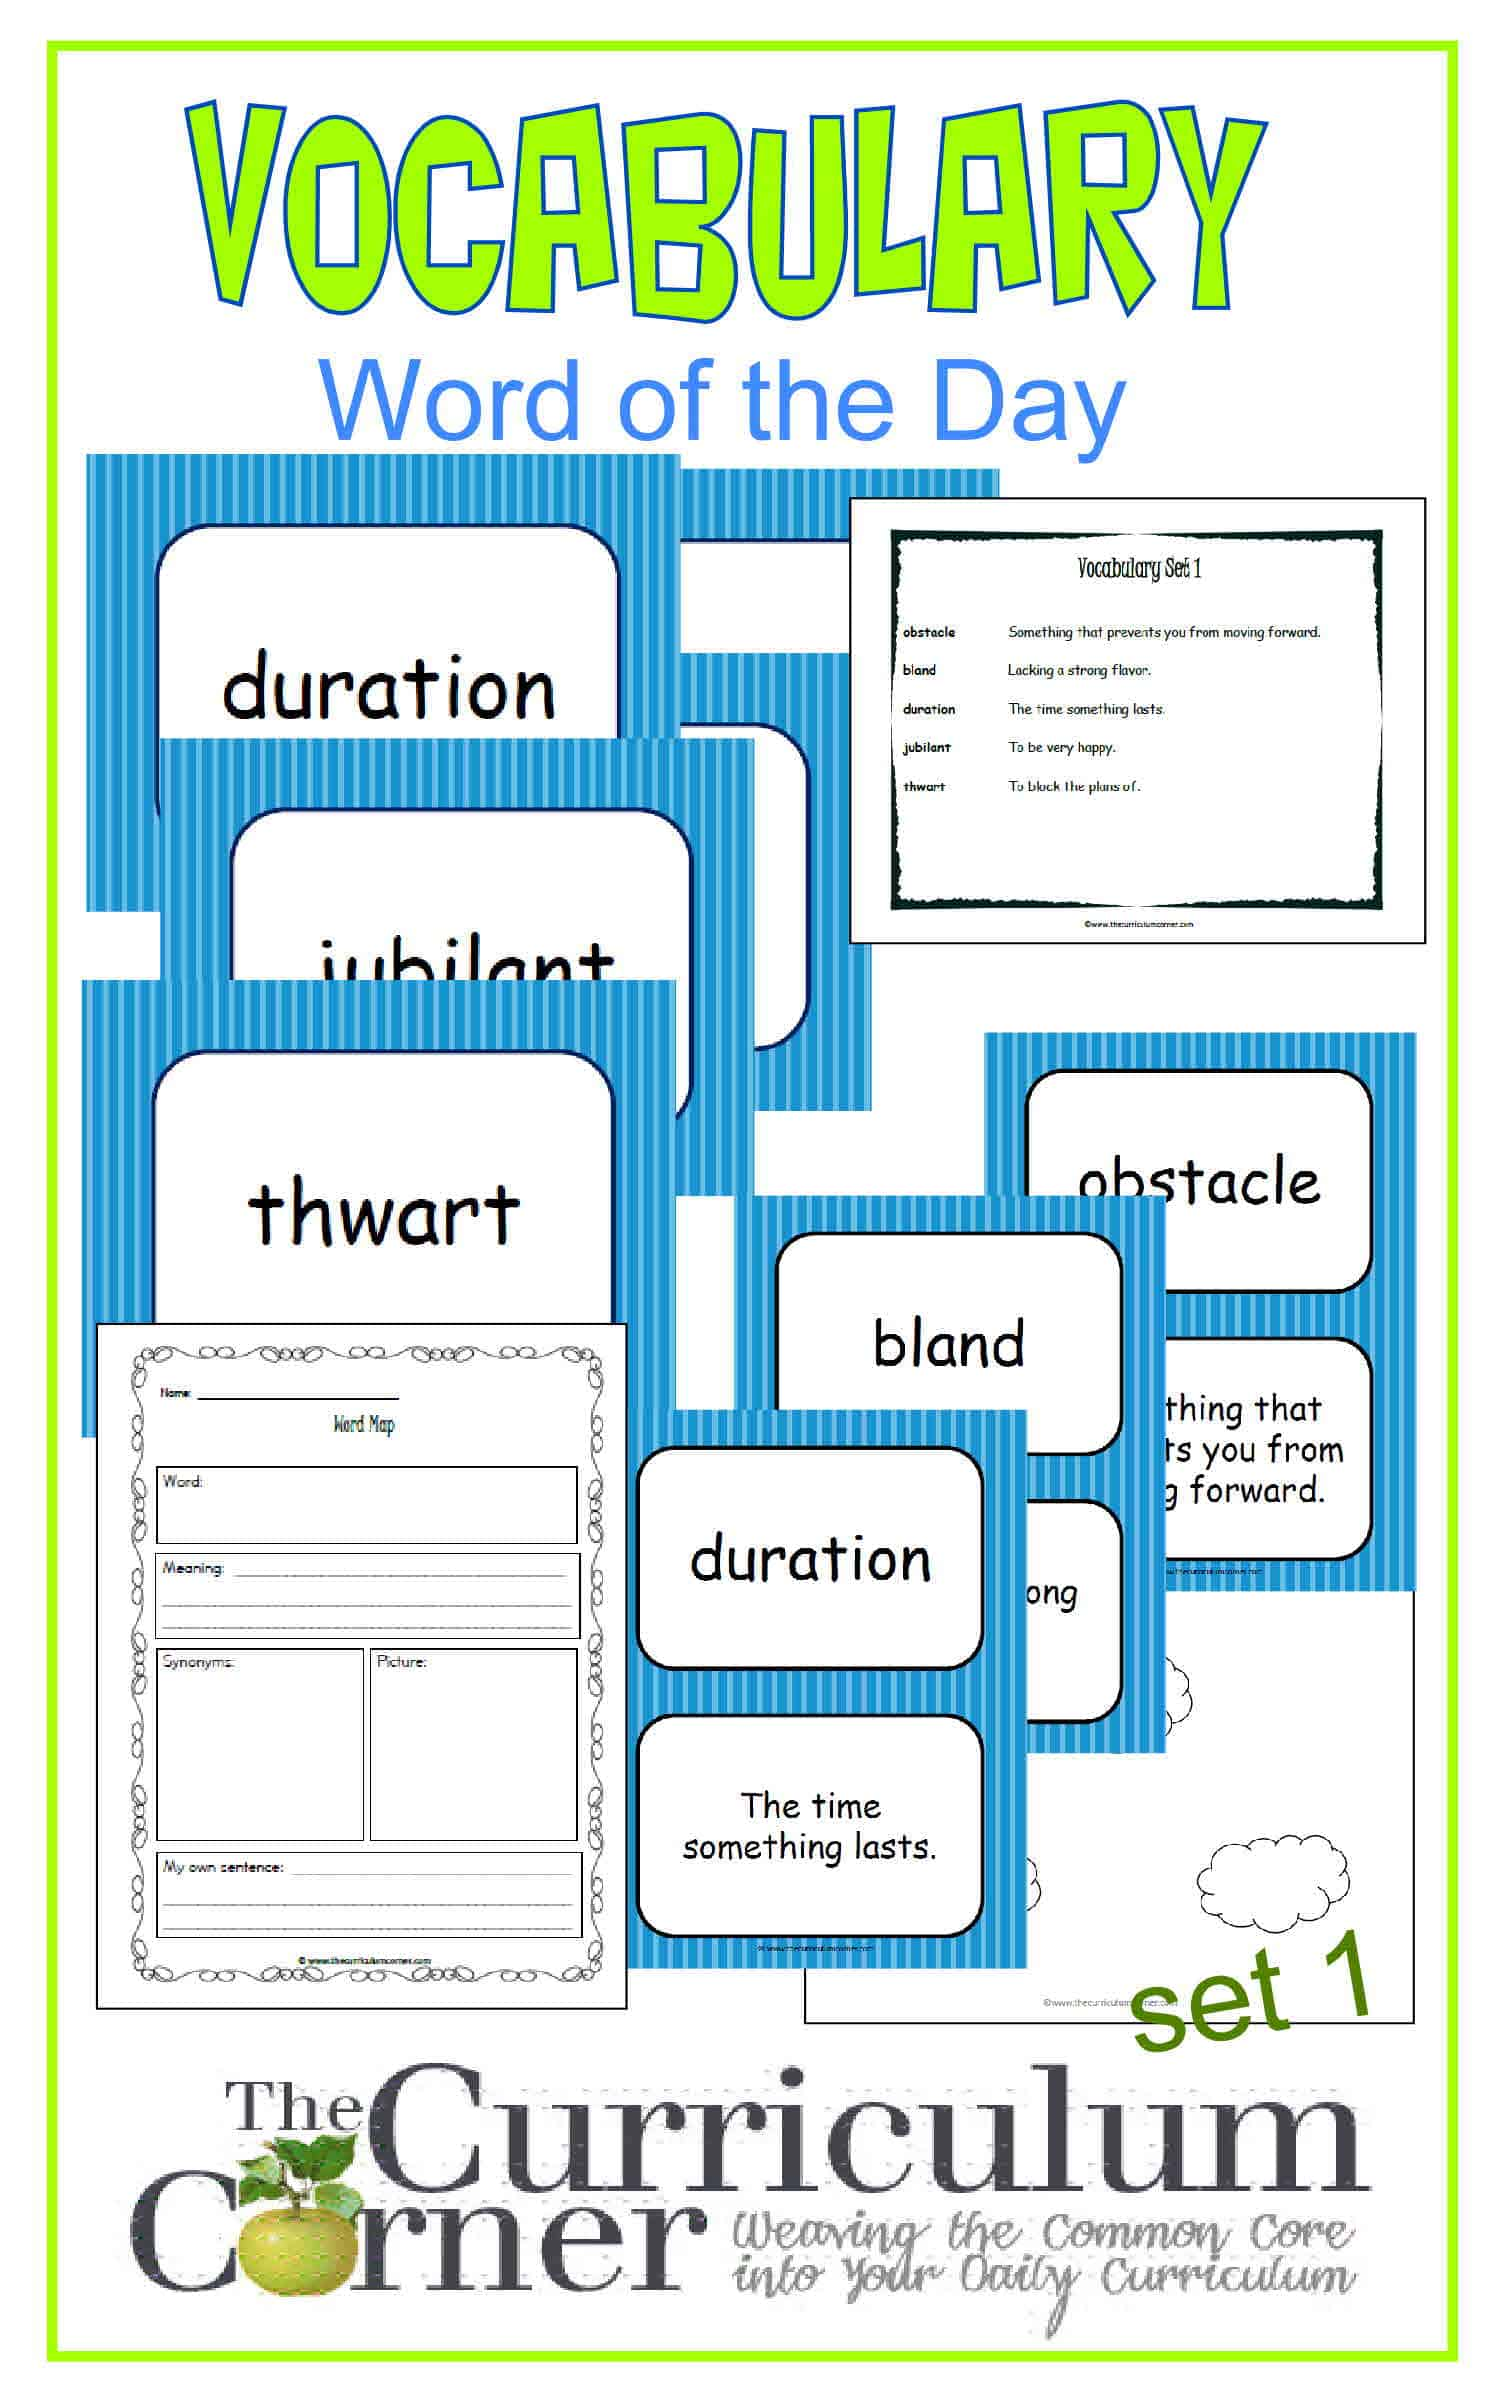 Vocabulary Word of the Day Set 1